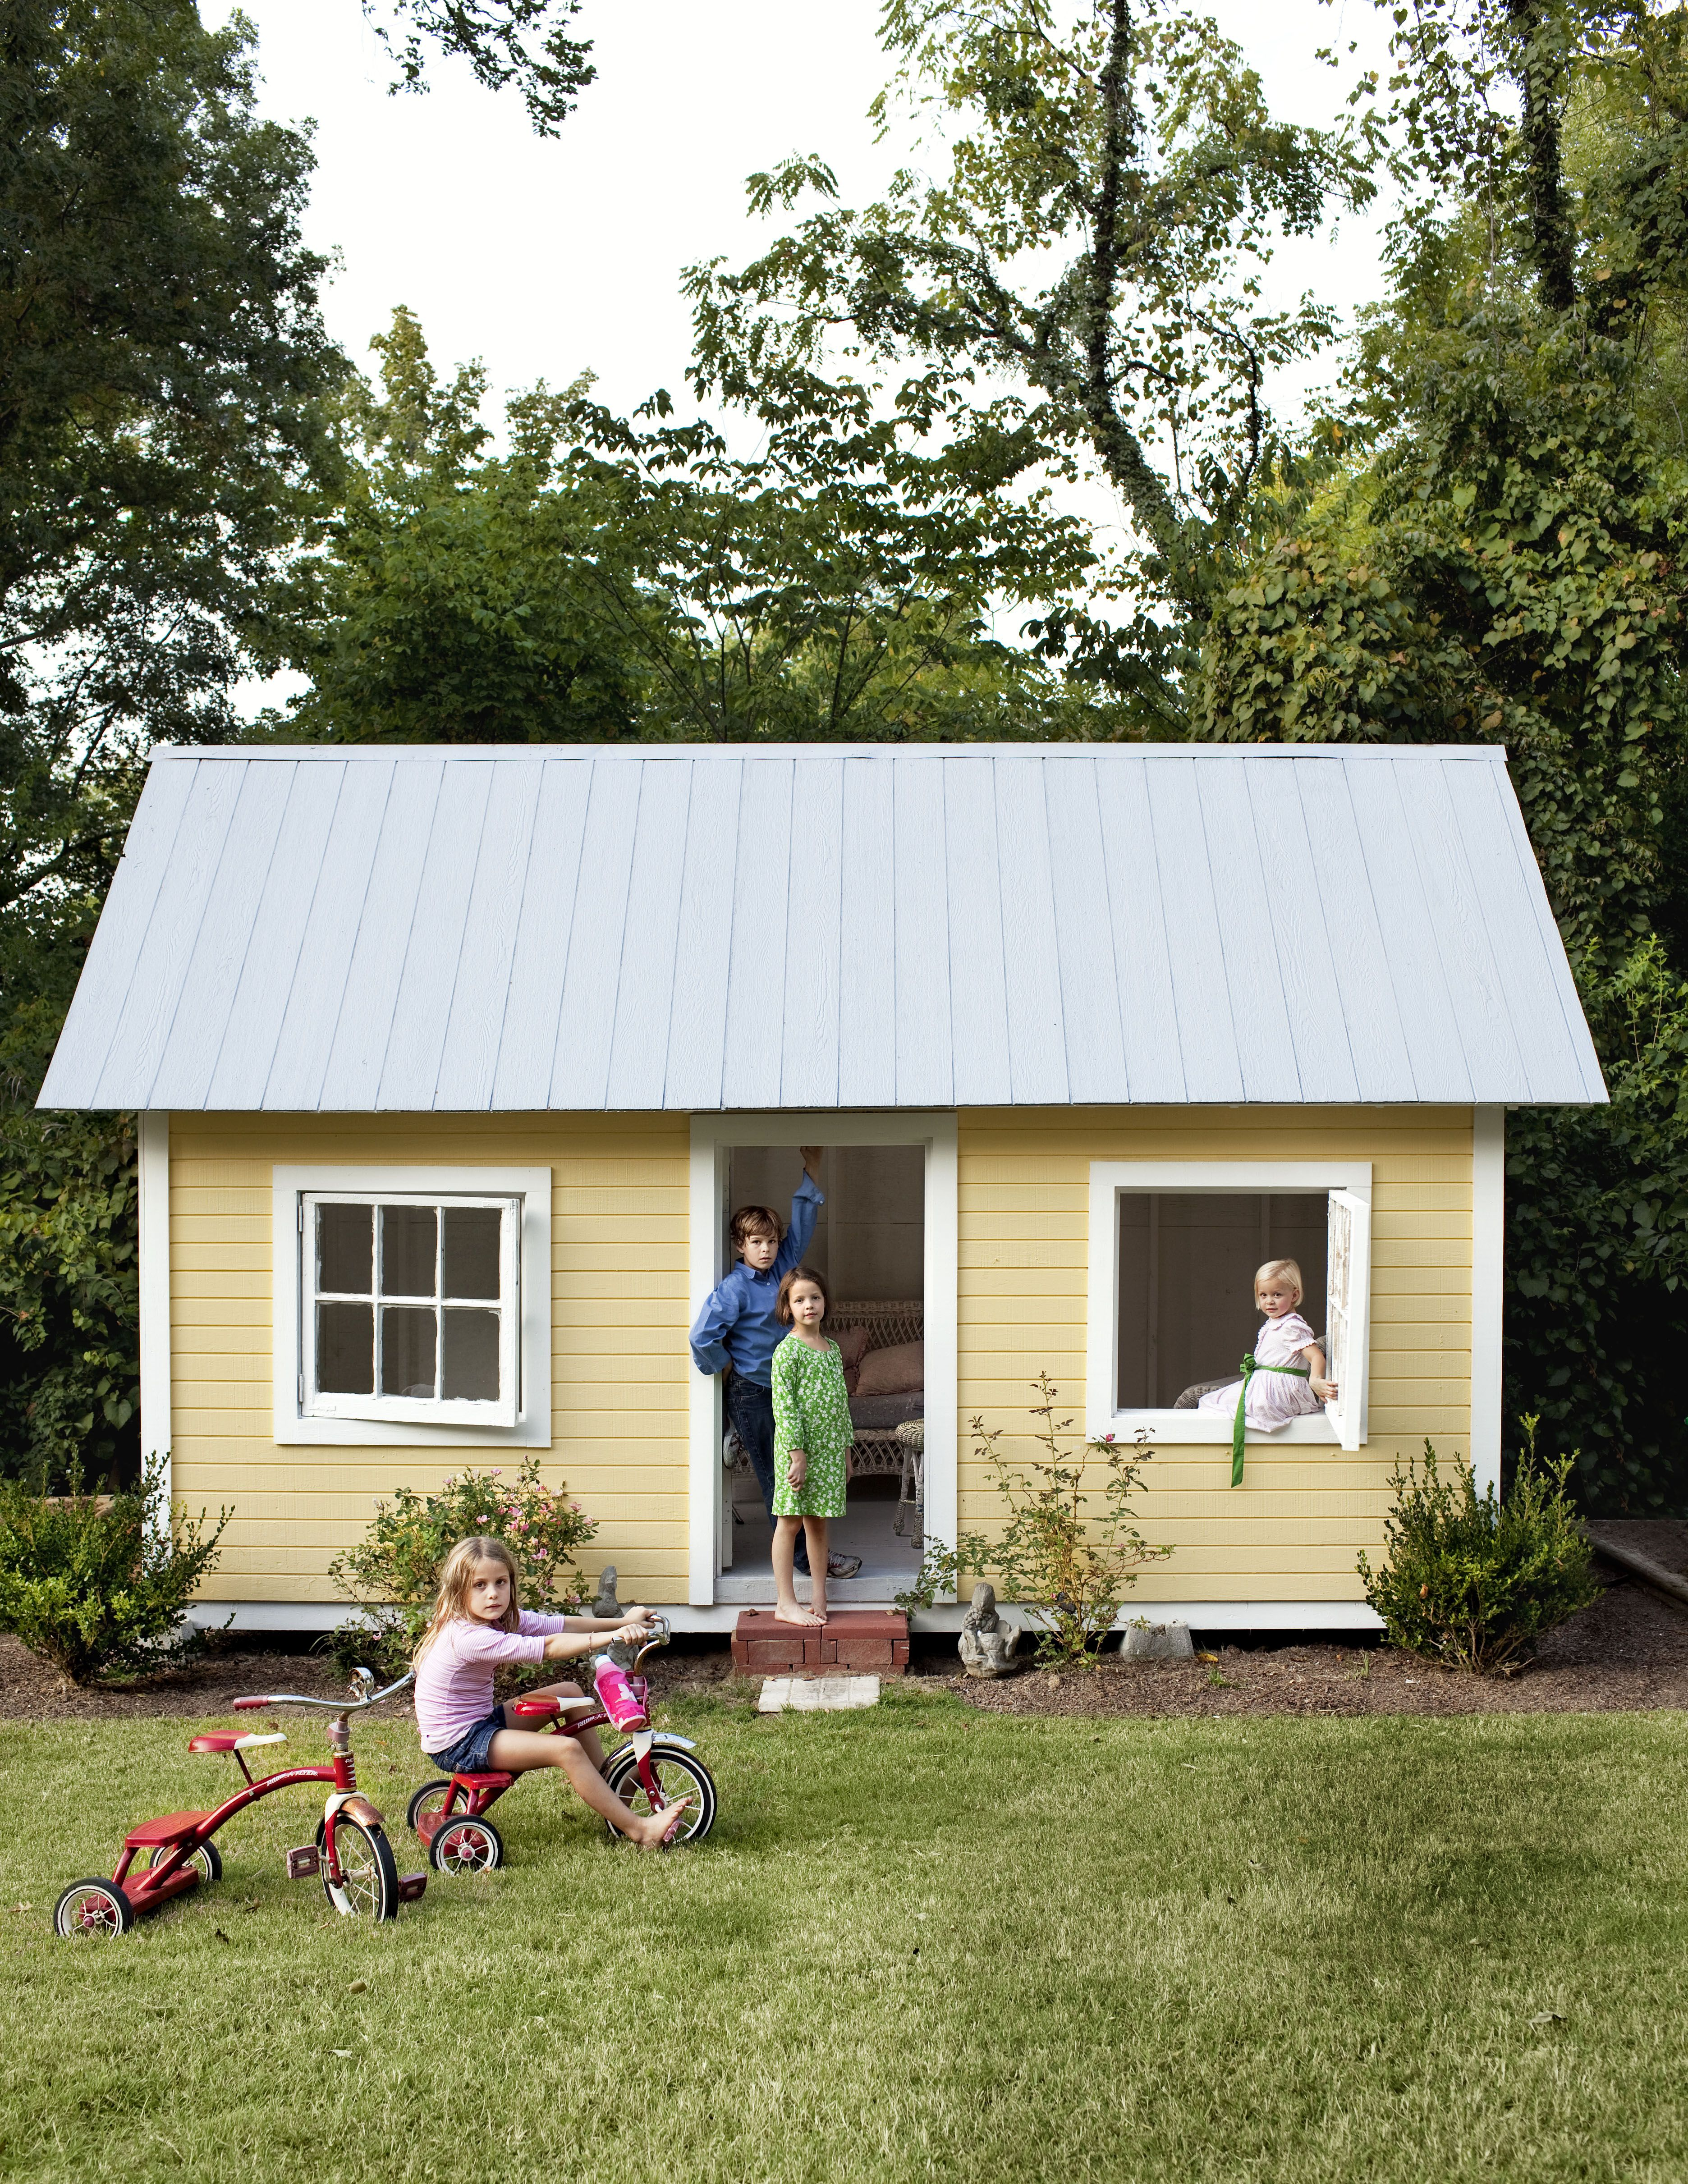 22 Kids Playhouse Ideas - Outdoor Playhouse Plans Raised Playhouse Plans Loft on workshop loft plans, garage loft plans, cabin loft plans, cottage loft plans, bedroom loft plans, shed loft plans, barn loft plans, house loft plans, storage loft plans, studio loft plans, carport loft plans, play loft plans,